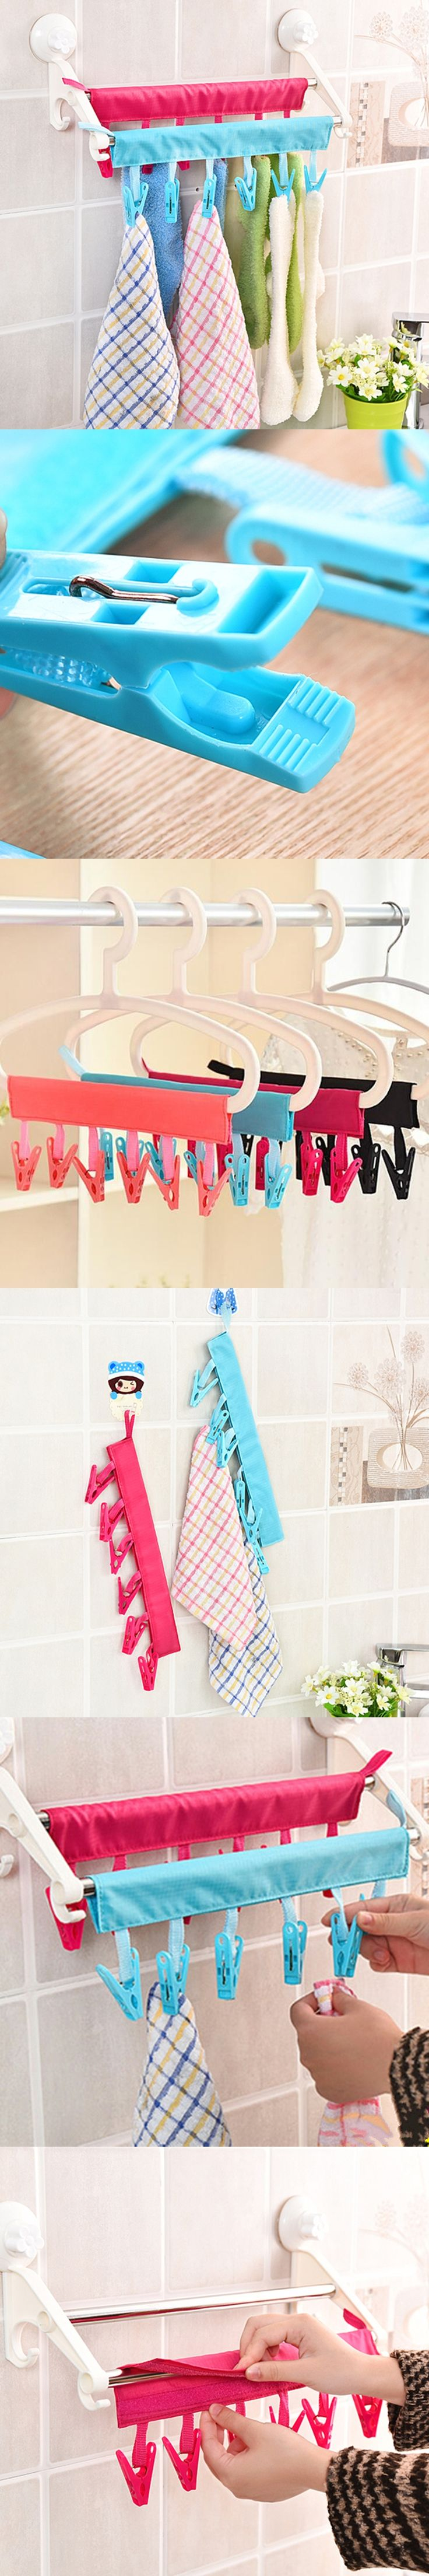 Multifunction plastic Portable Bathrooms Cloth Hanger Rack,Clothespin BusinessTravel Folding Cloth Hanger Clips,Free shipping.